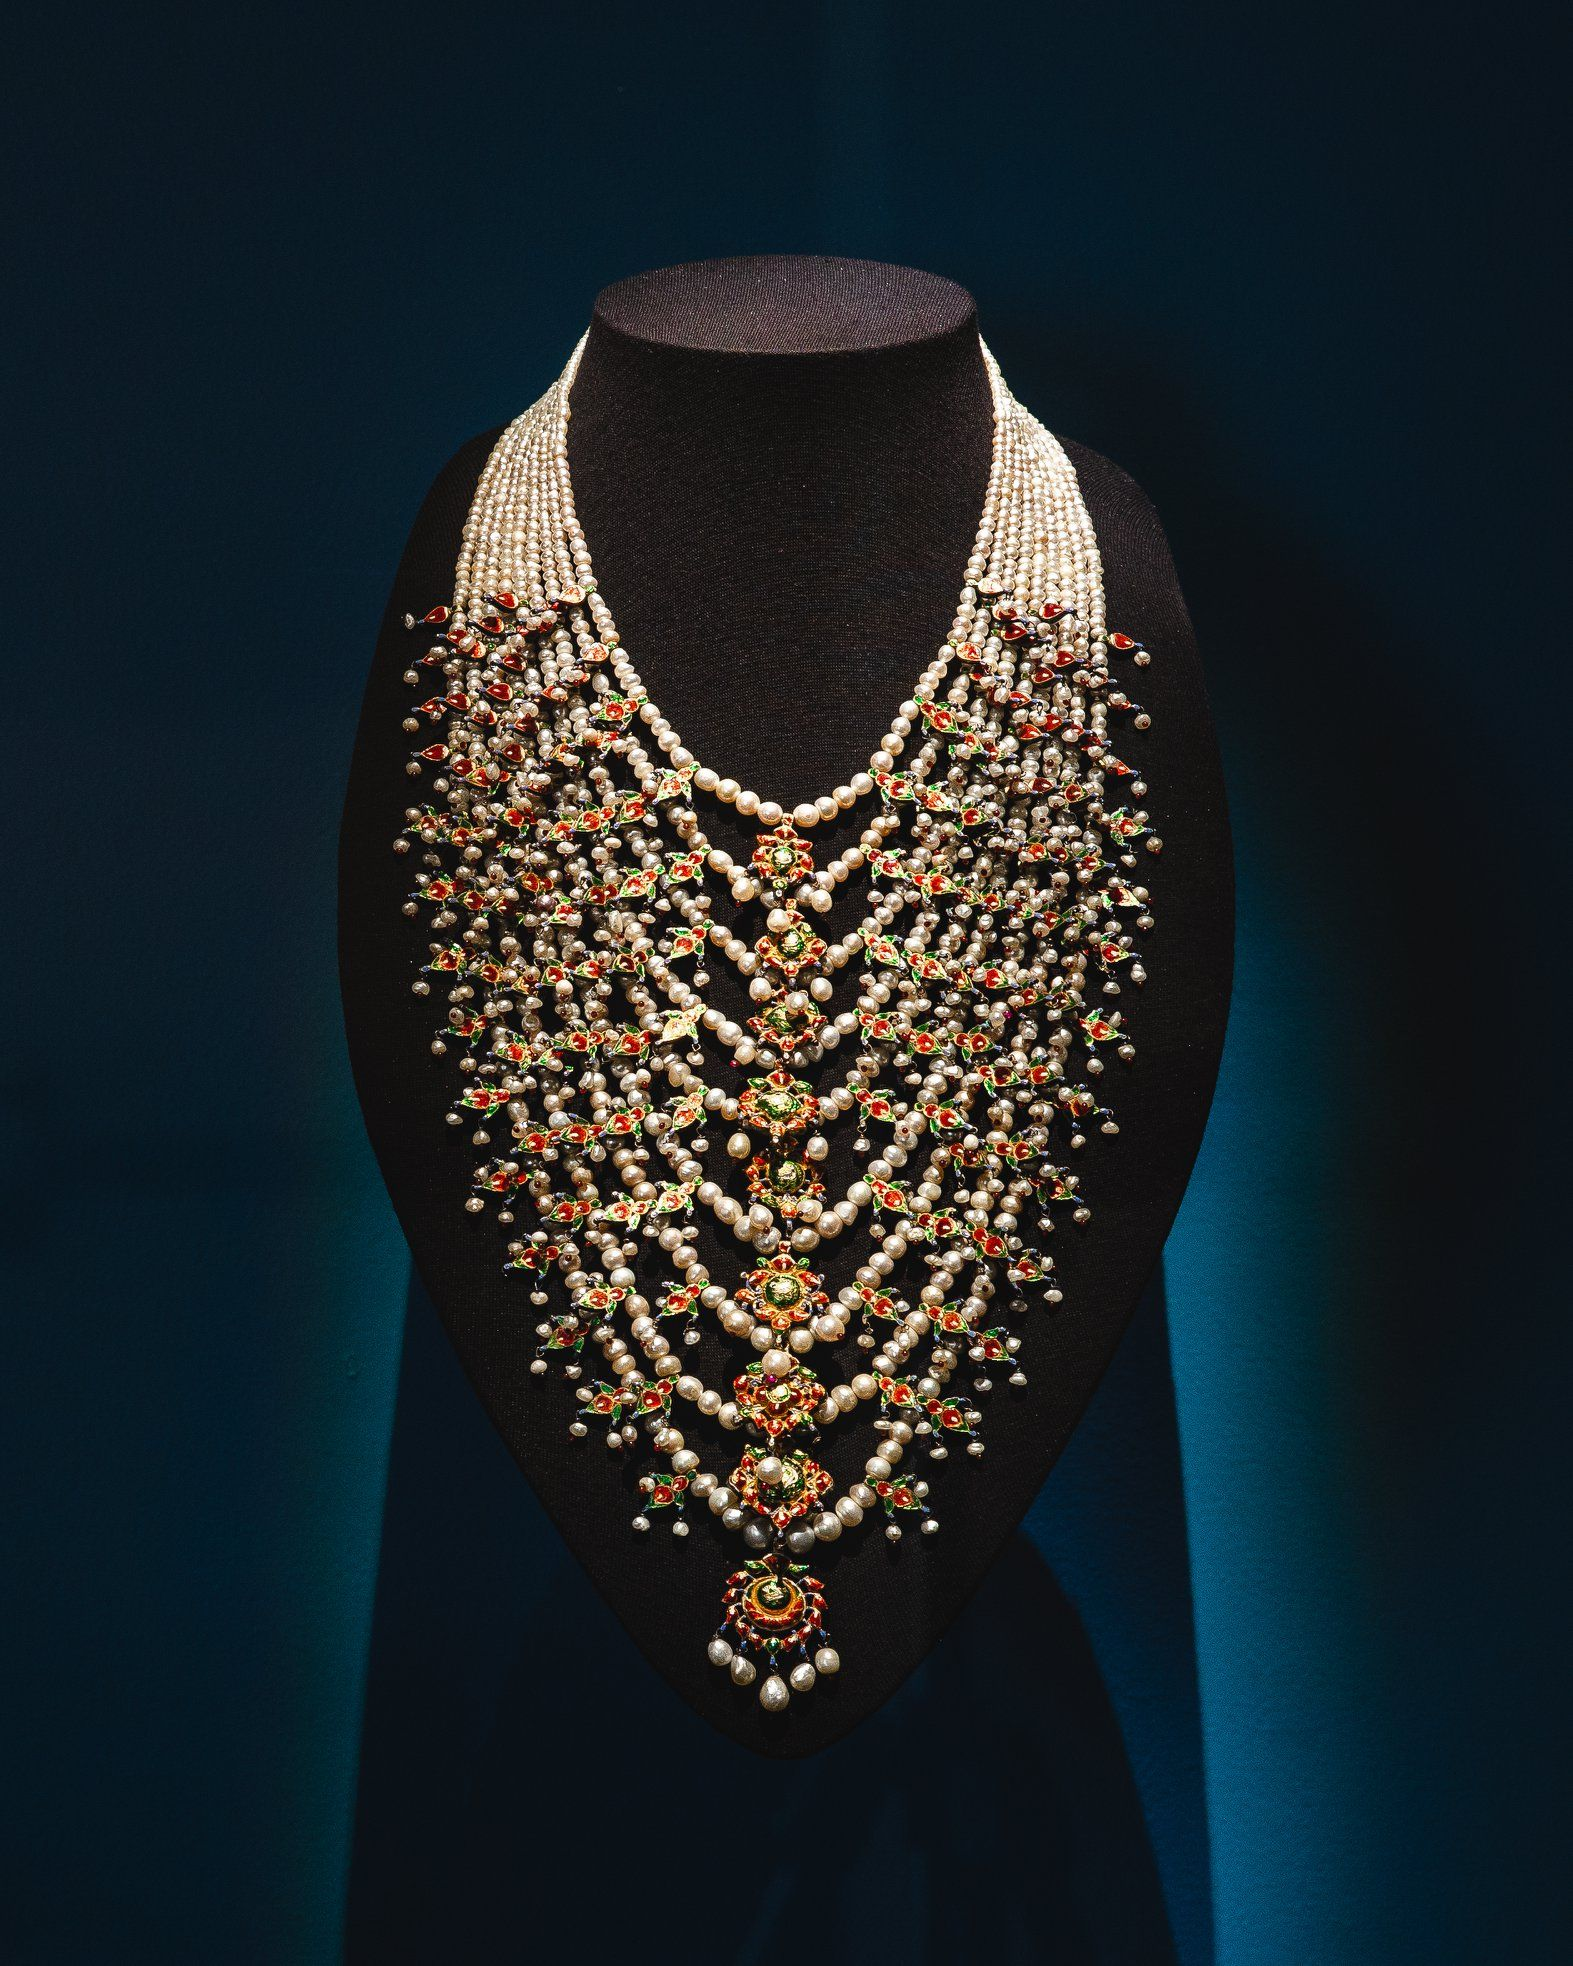 Necklace with 1888 pearls